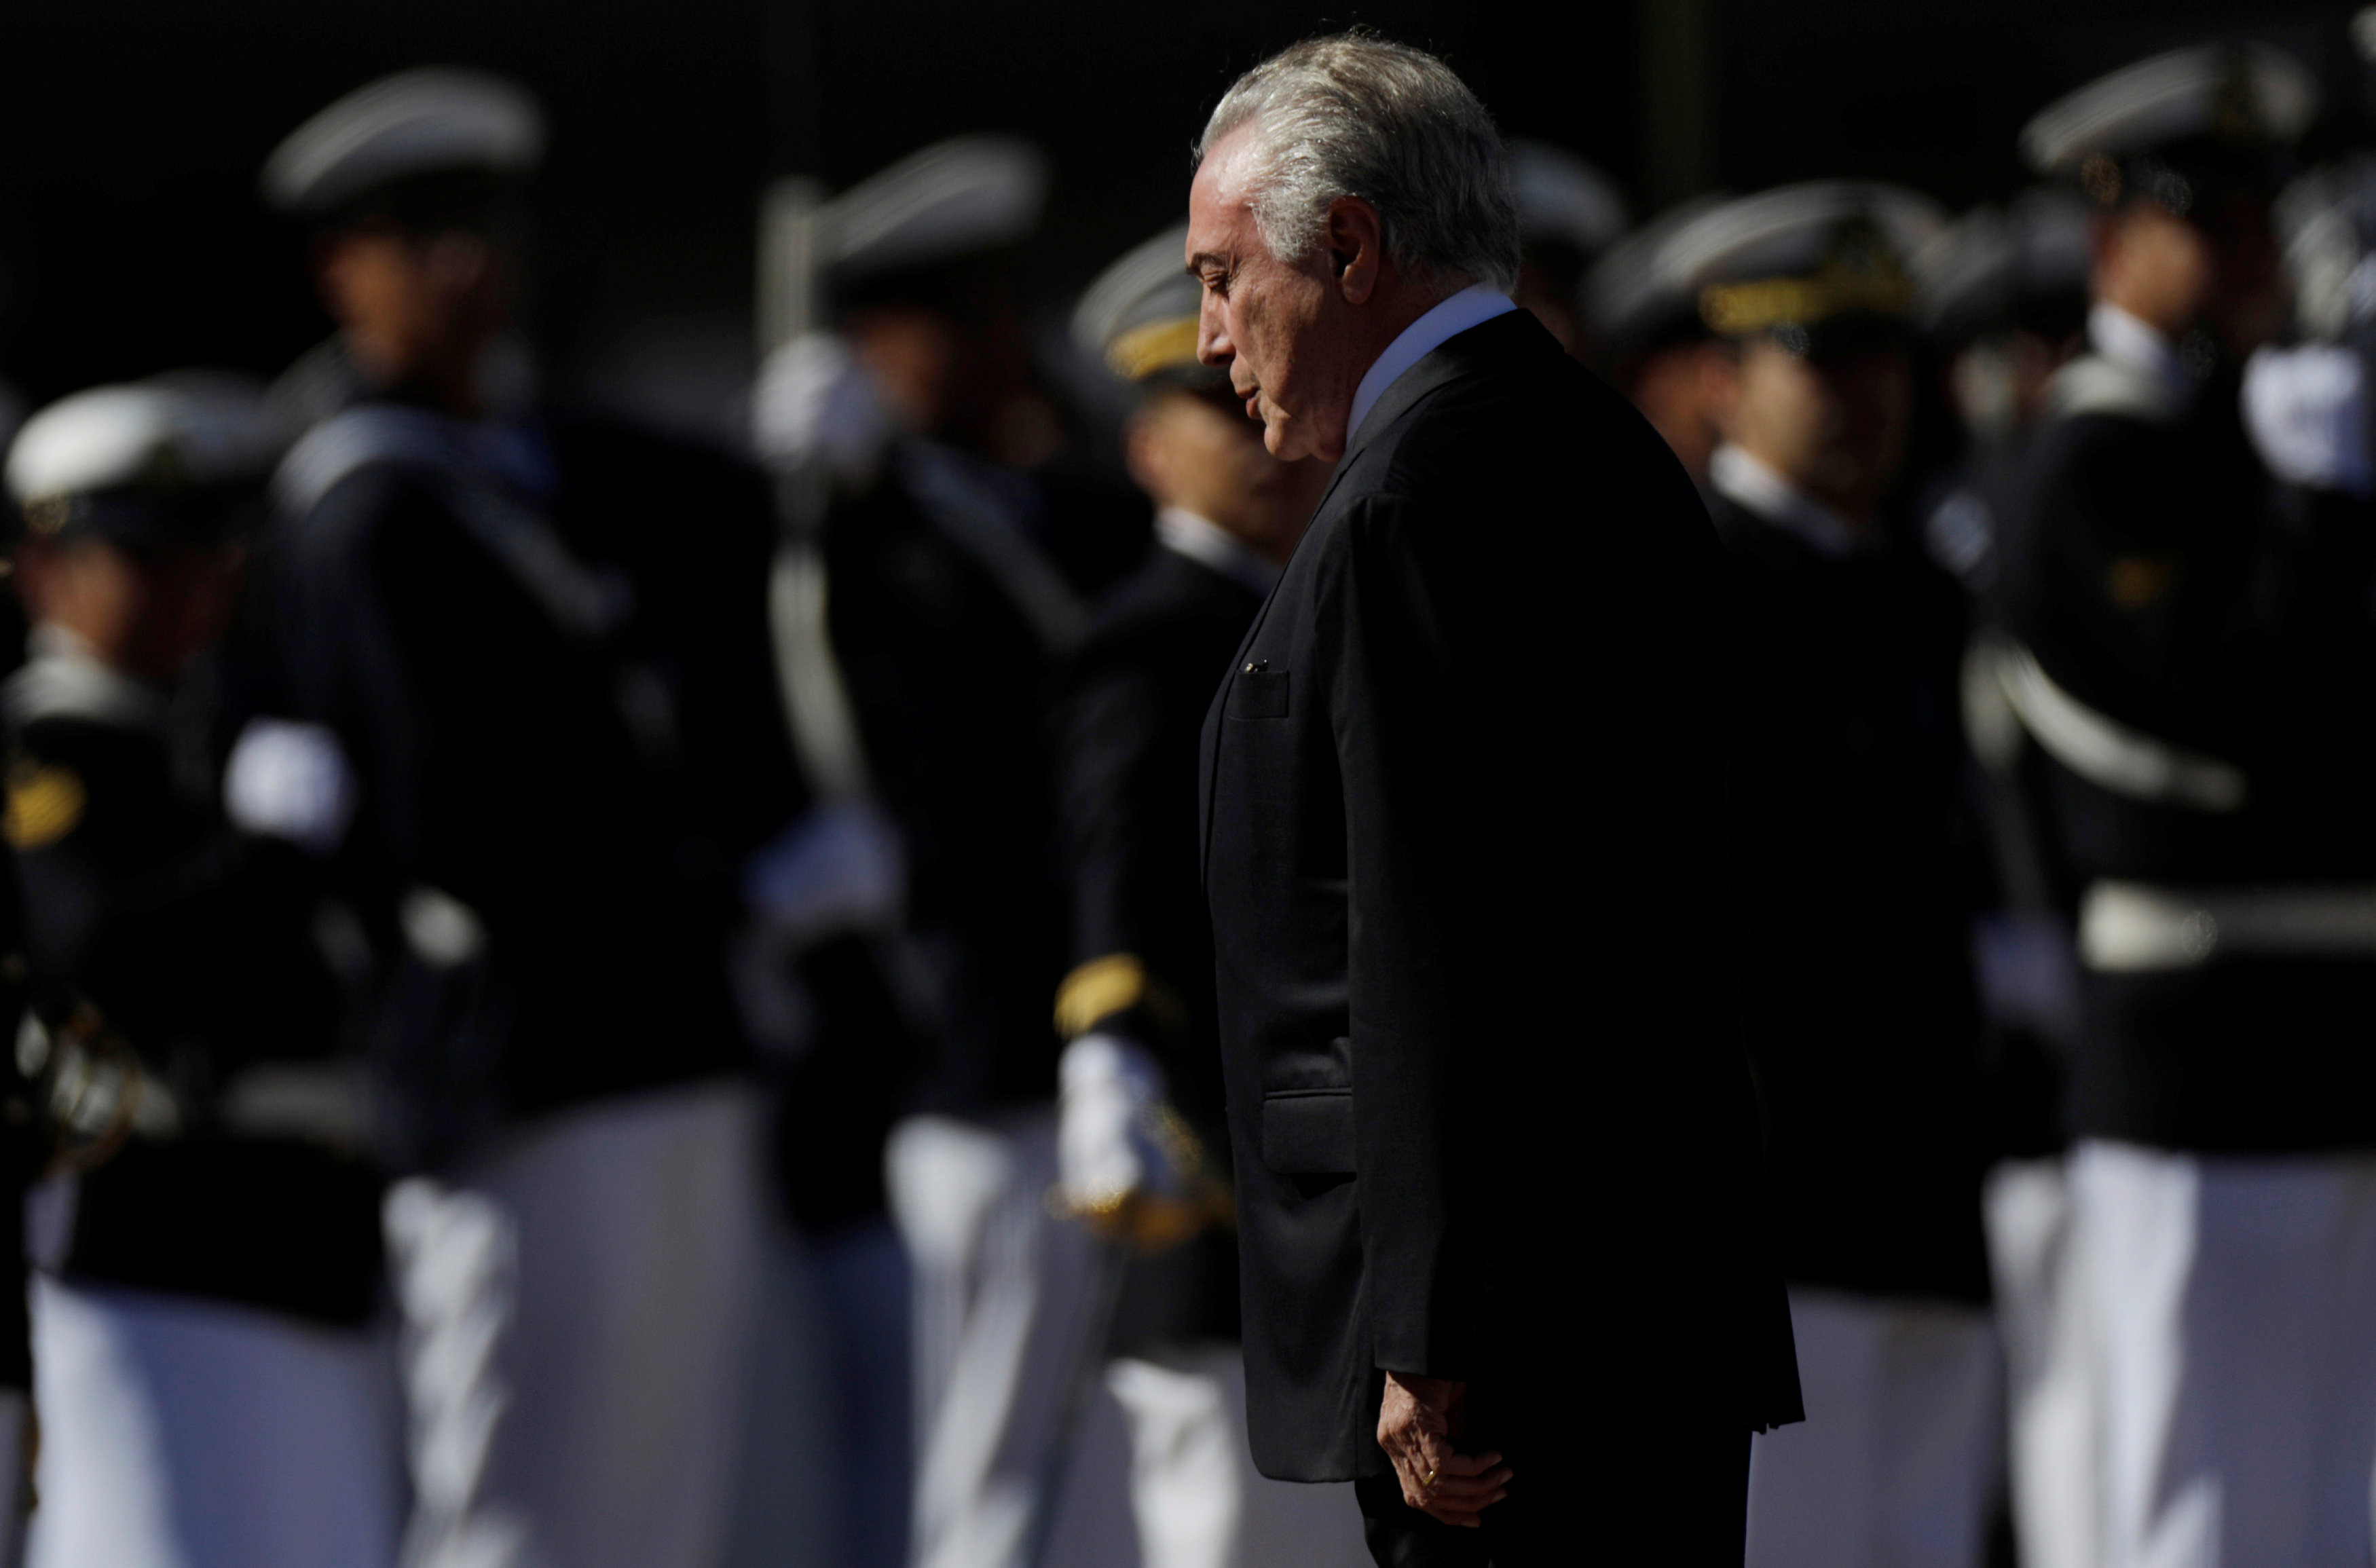 Brazil Electoral Court Dismisses Case That Could Have Ousted Temer